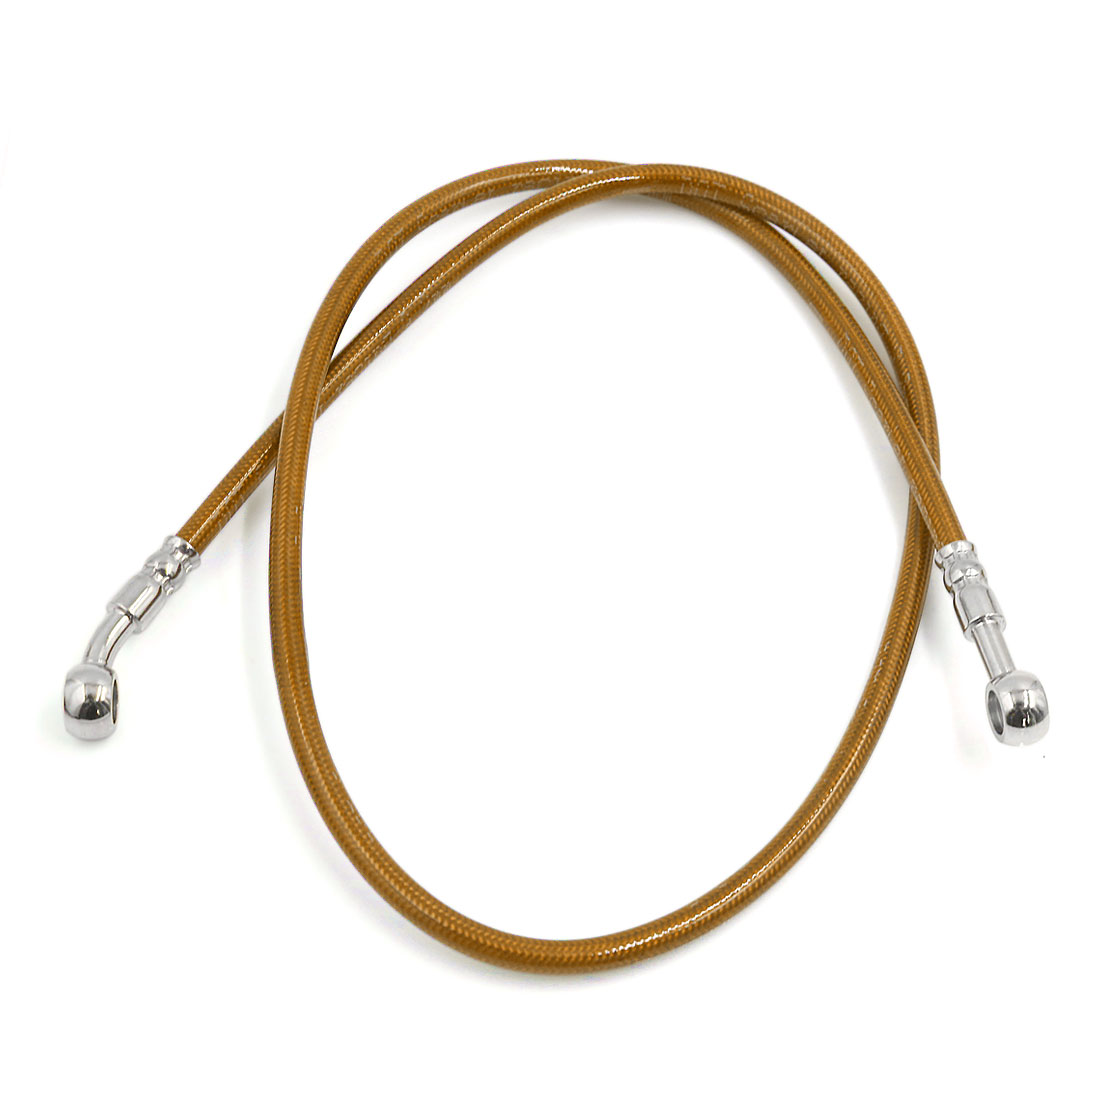 Universal 100cm Yellow Stainless Steel Rubber Brake Oil Hose Line for Motorcycle